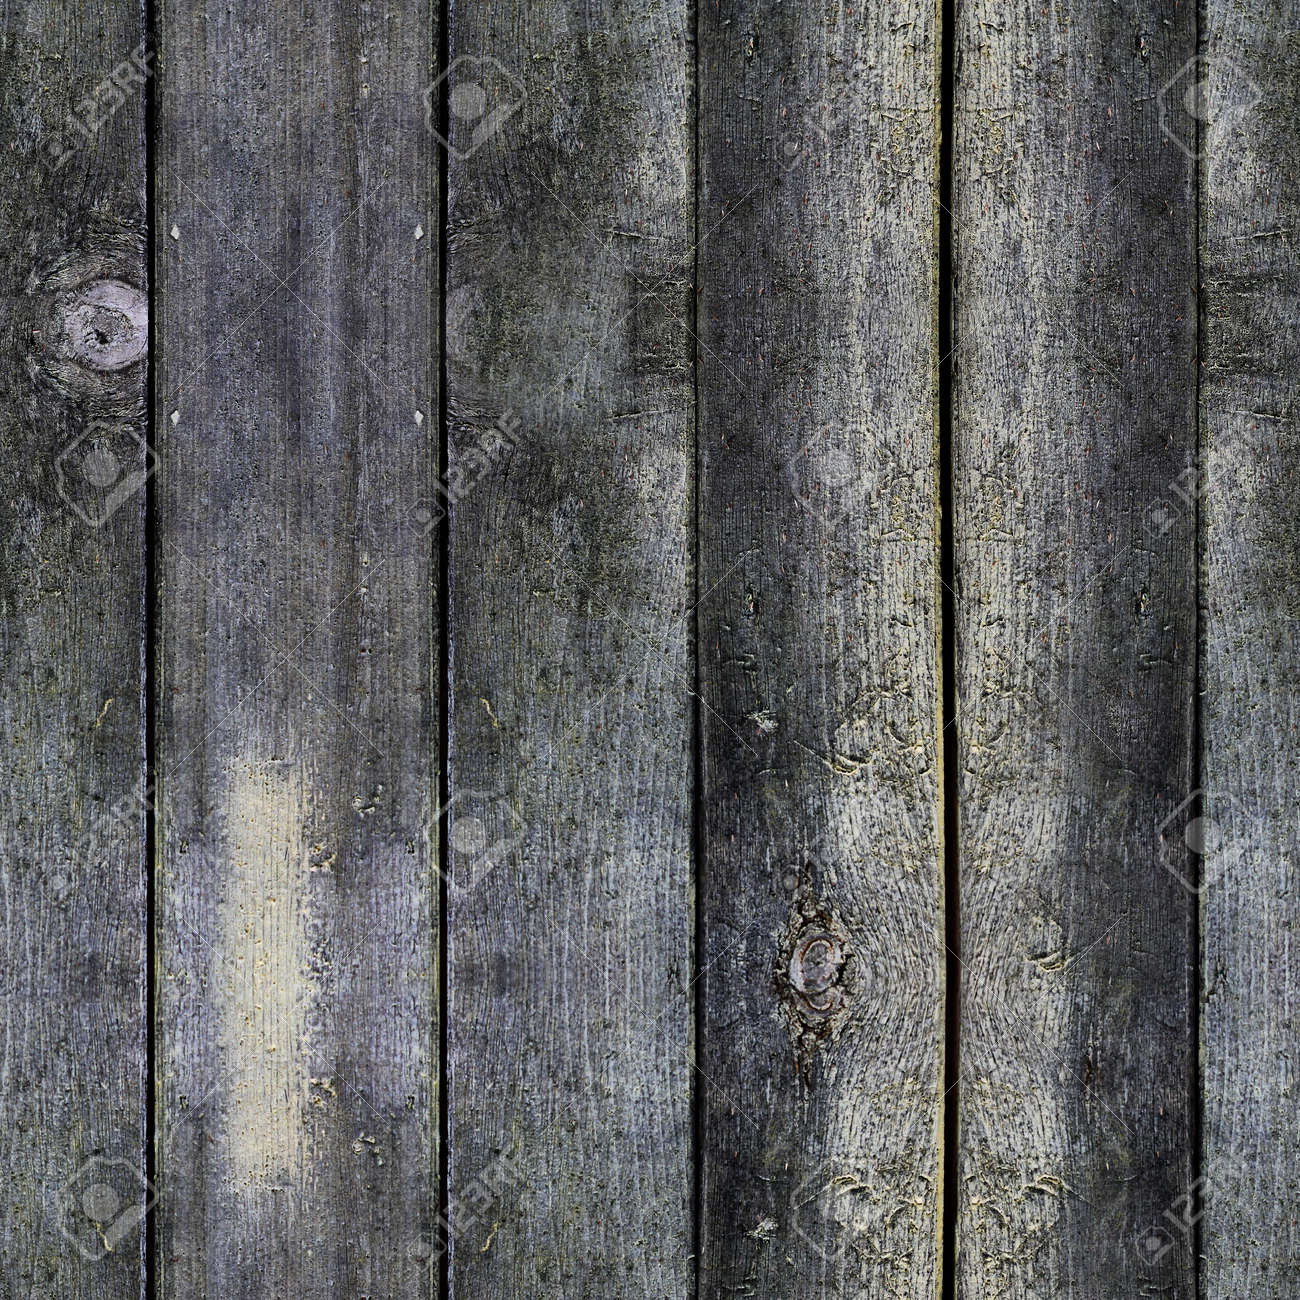 Stylized Wooden Planks - All About Wooden